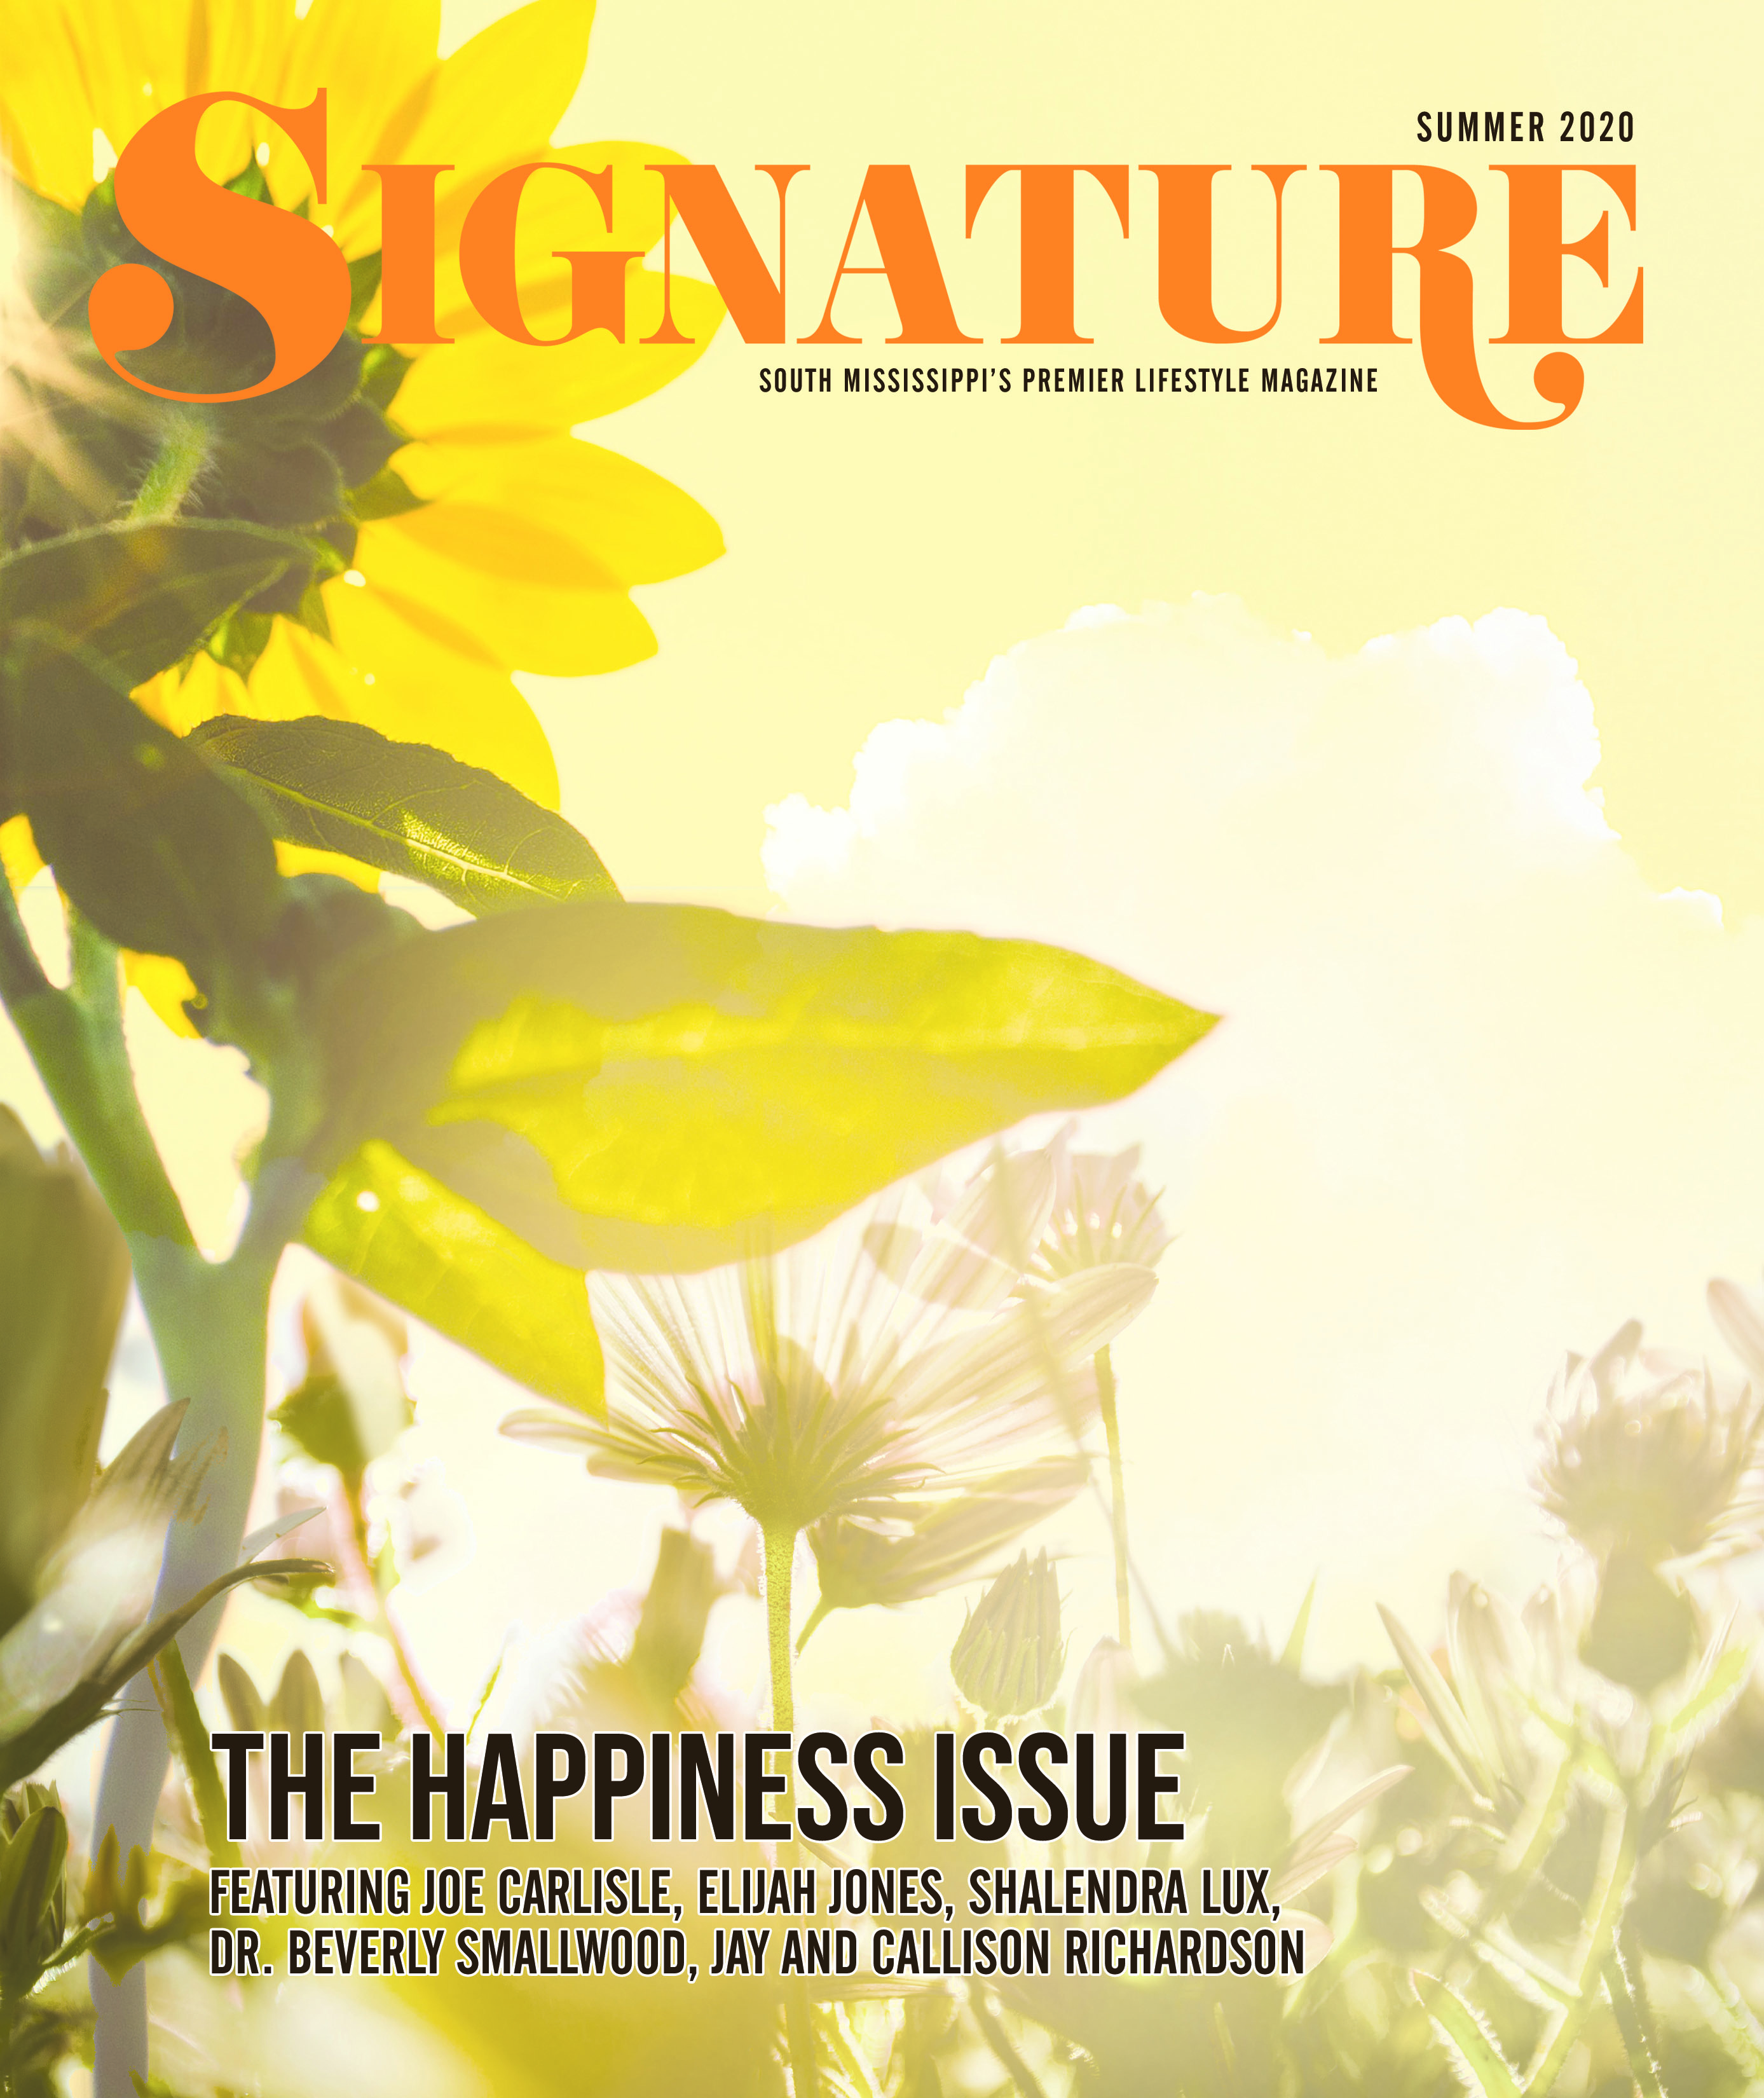 Spring 2020 Signature eEdition